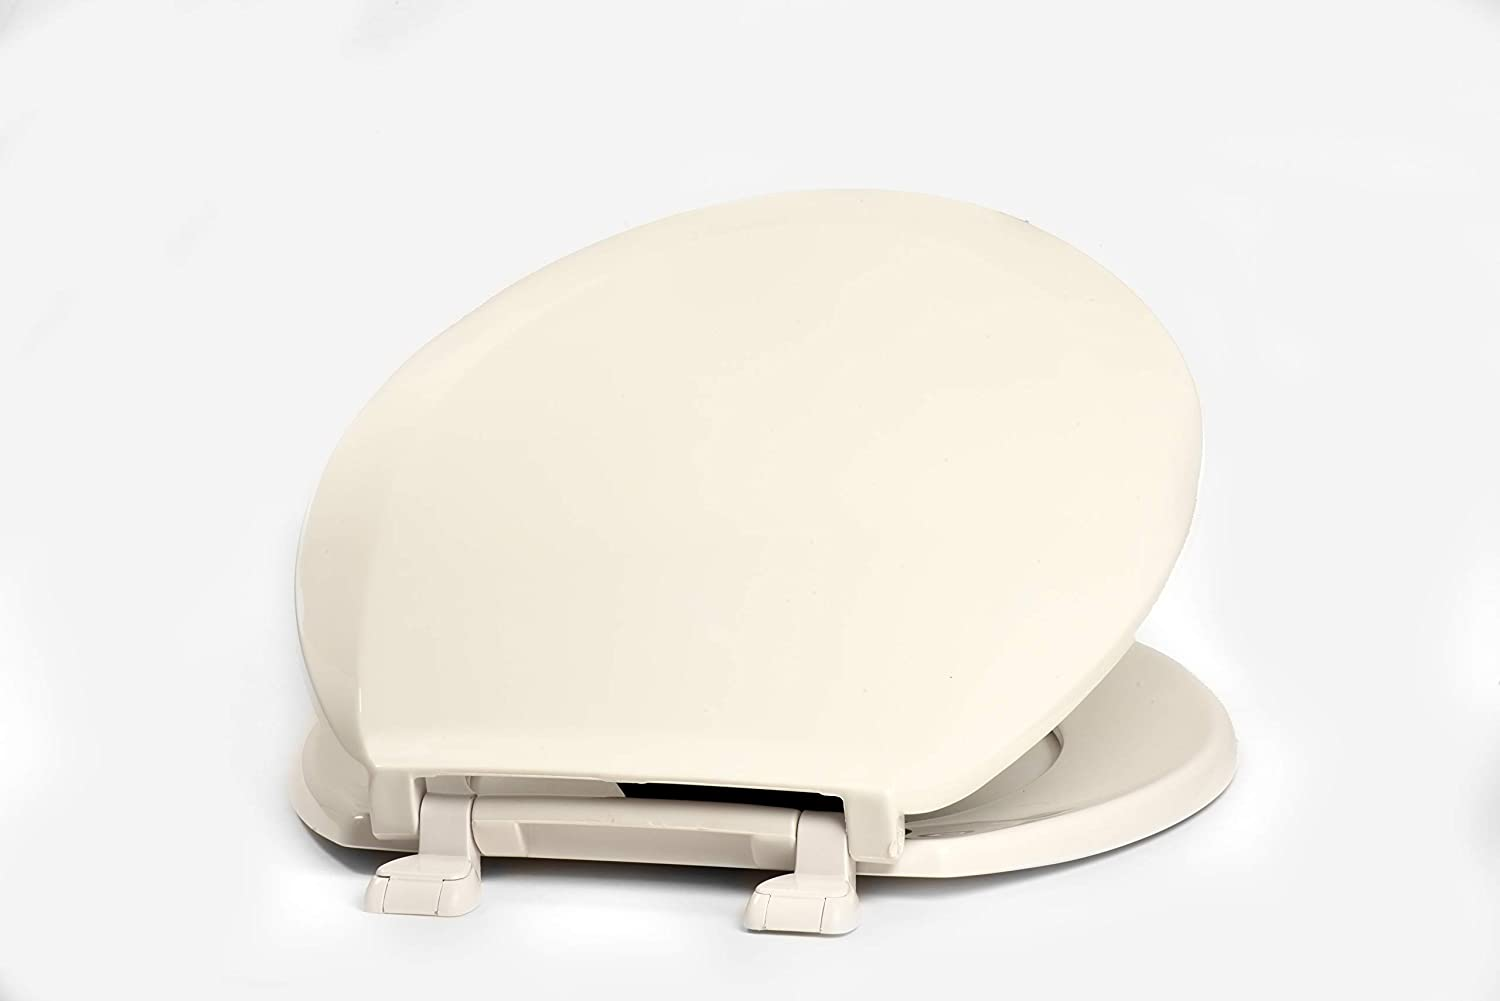 White Centoco 1200-001 Plastic Round Toilet Seat with Closed Front